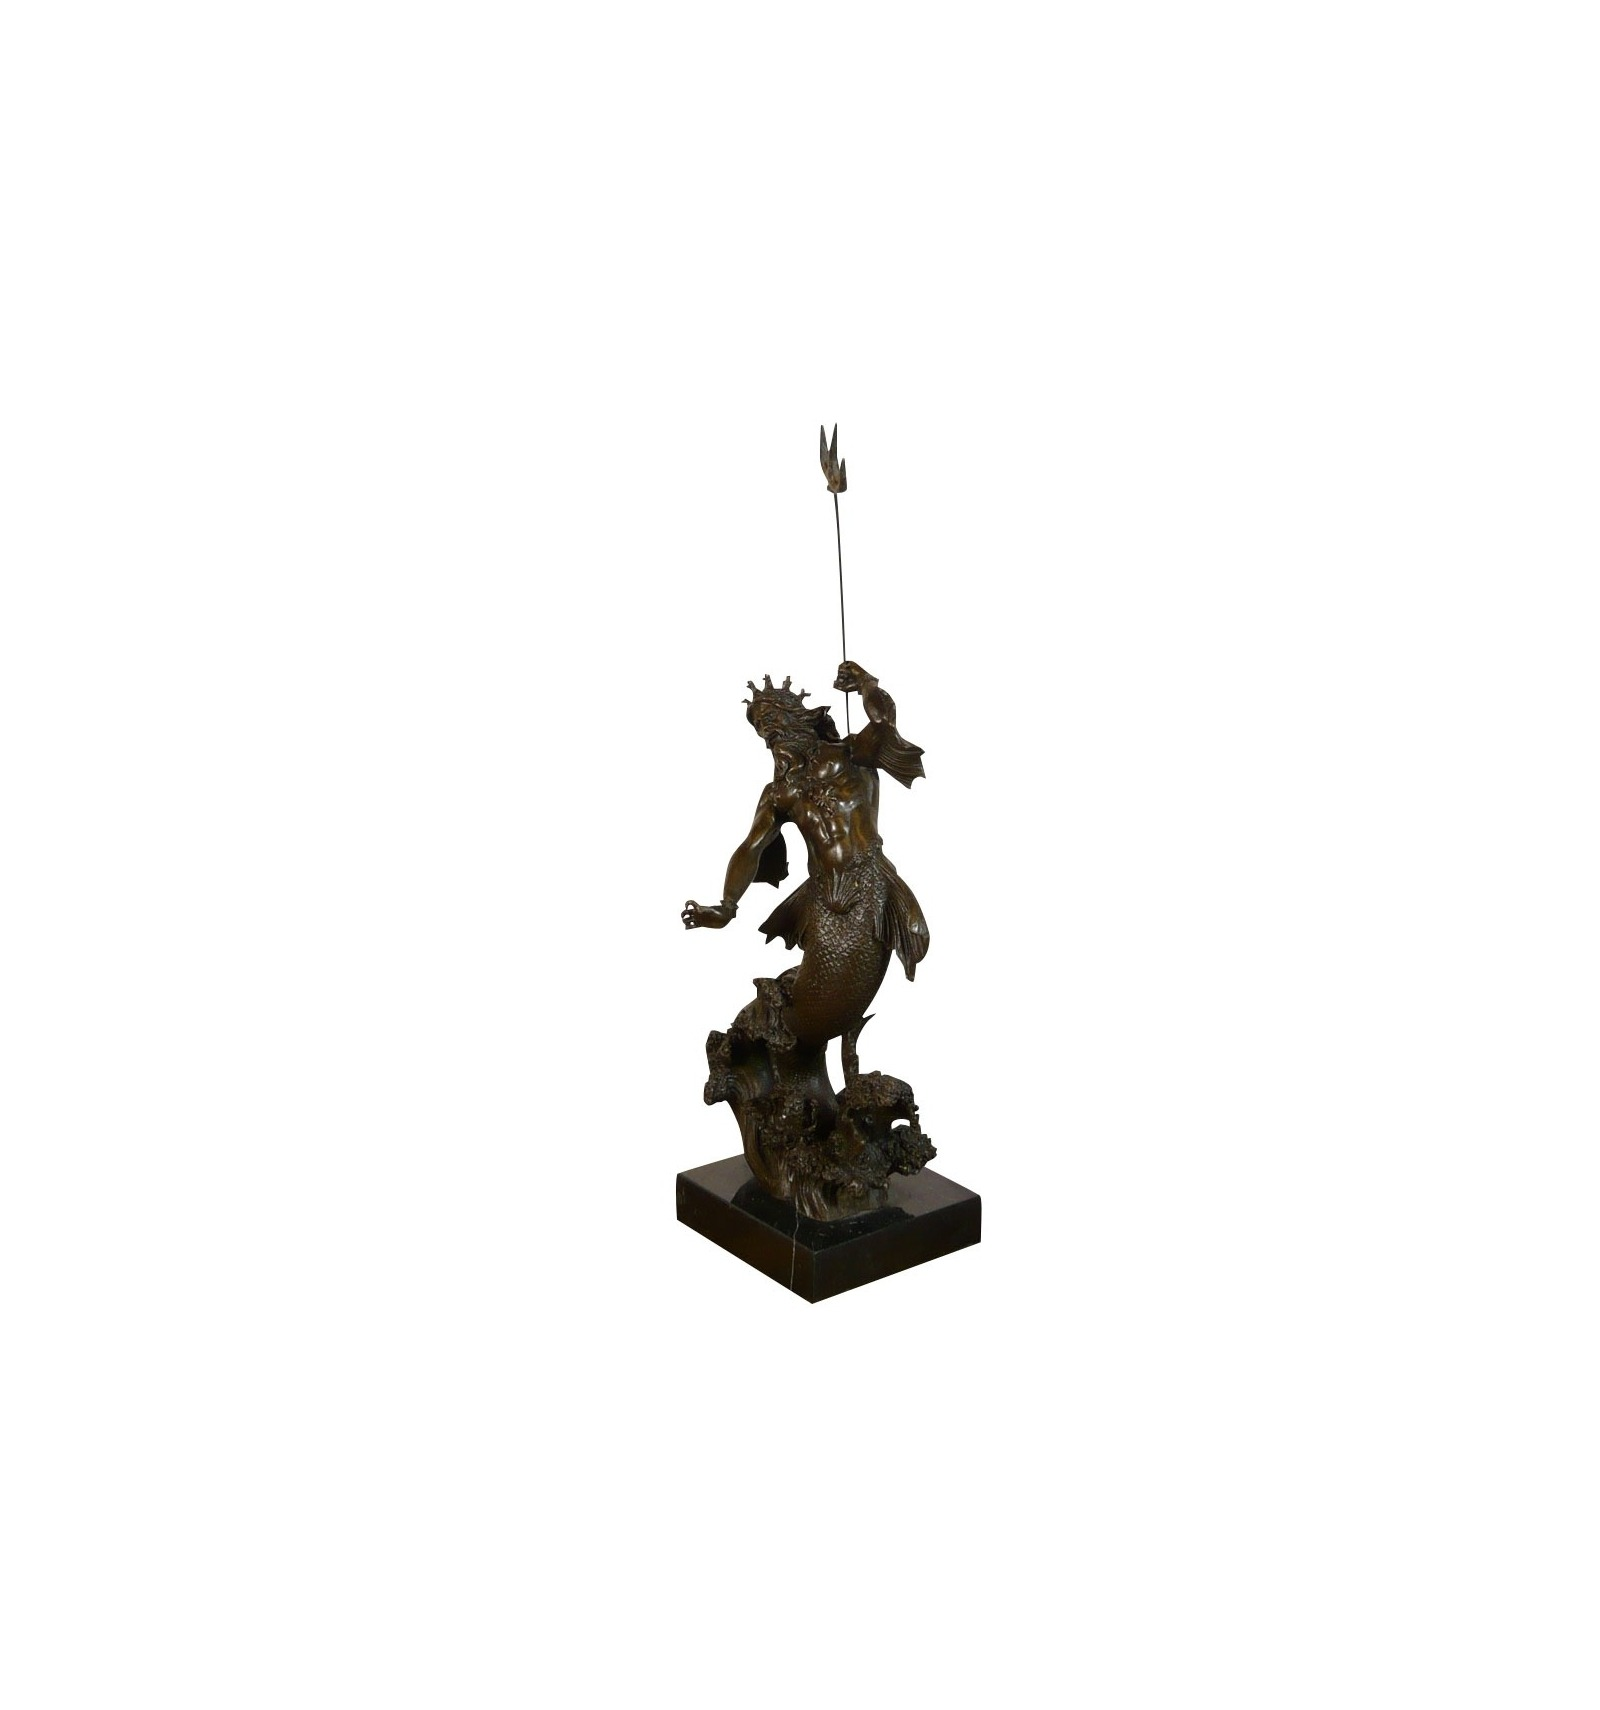 Statue of neptune poseidon bronze greek sculptures roman - Poseidon statue greece ...